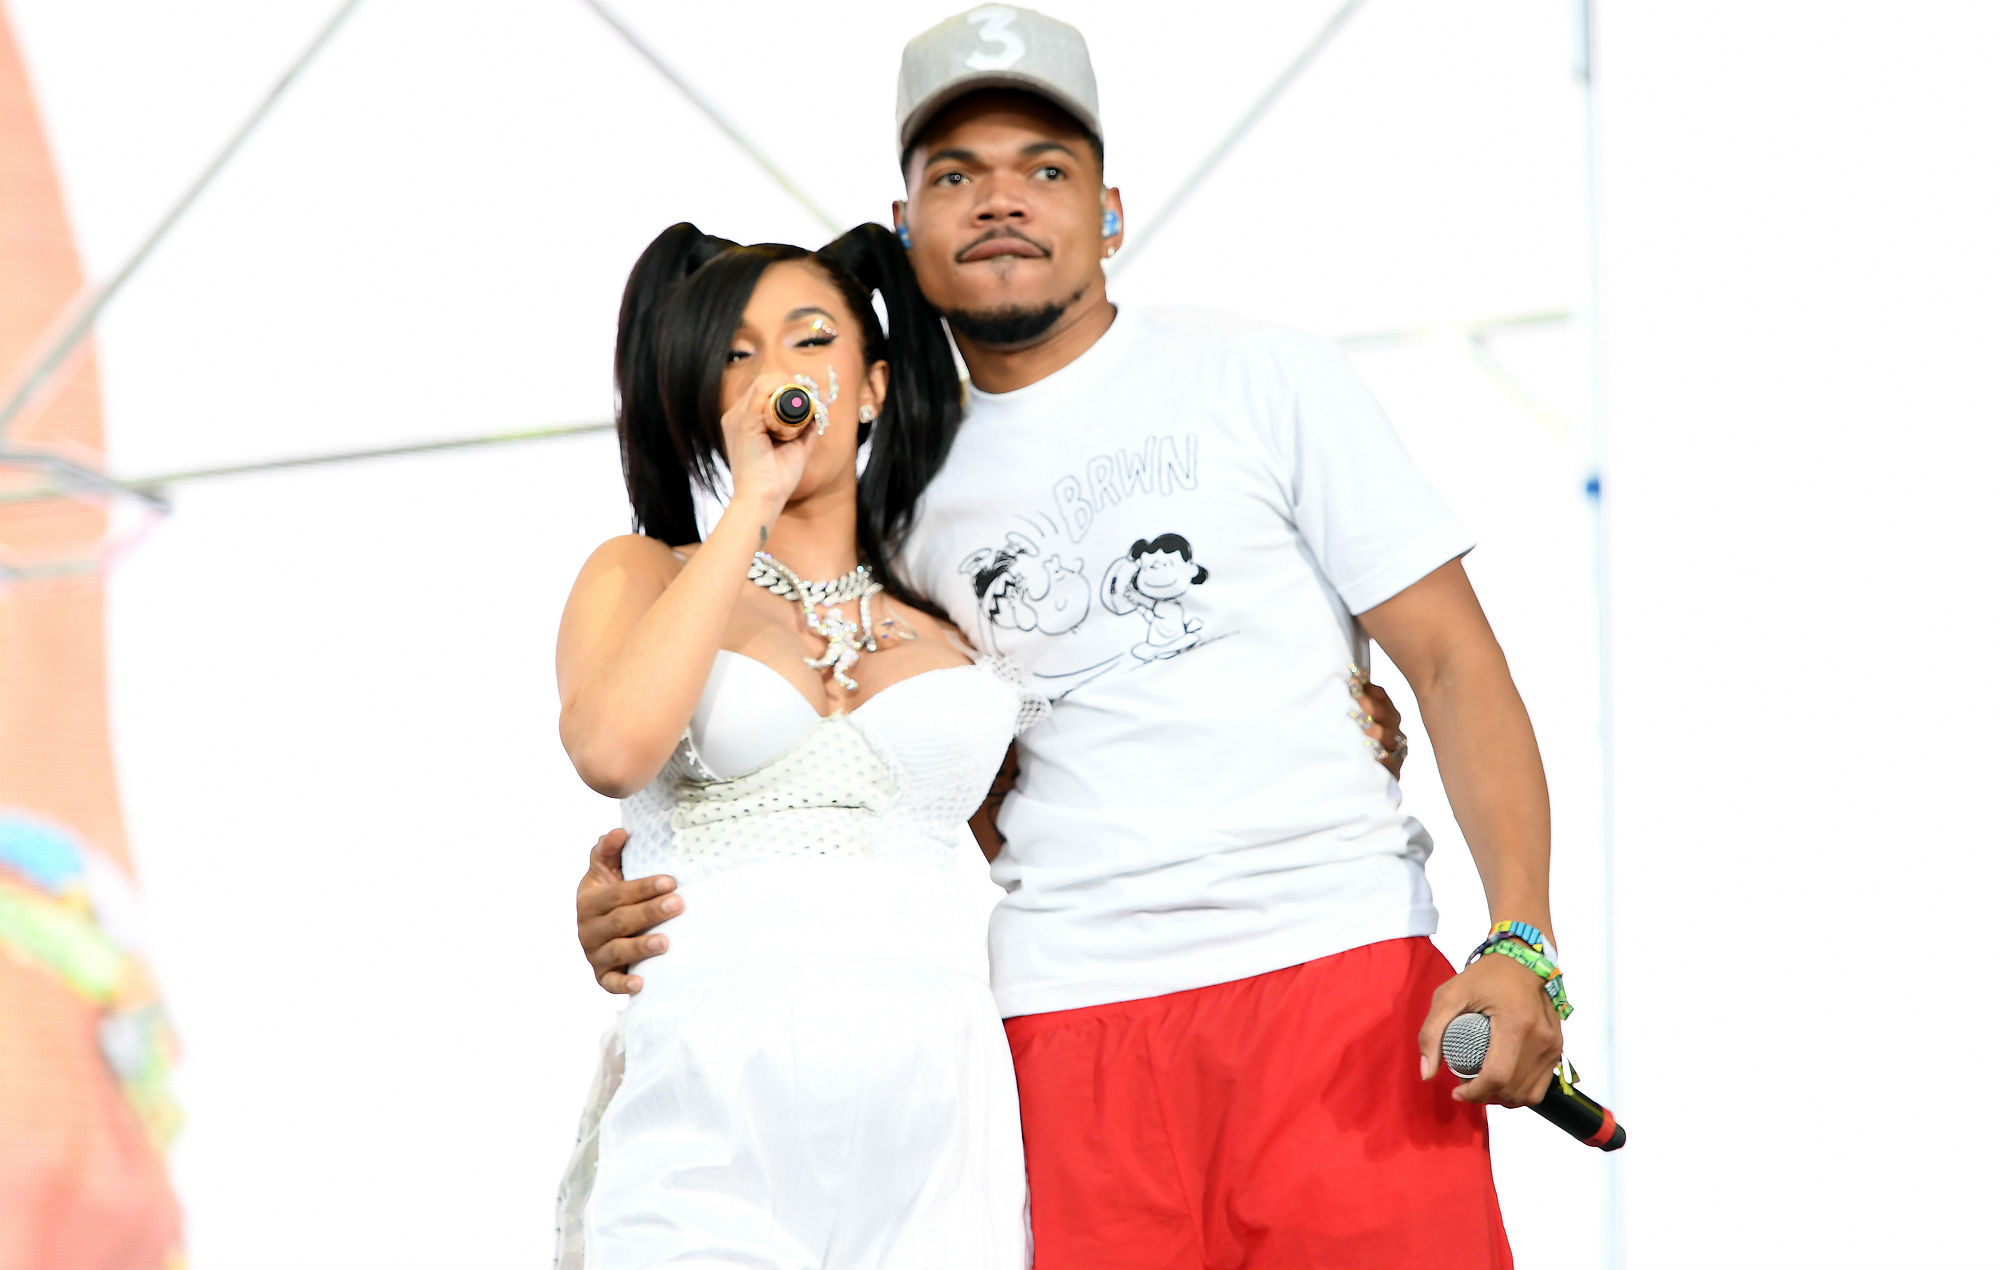 """Chance The Rapper and Cardi B warn that """"Trump is going to win again"""""""